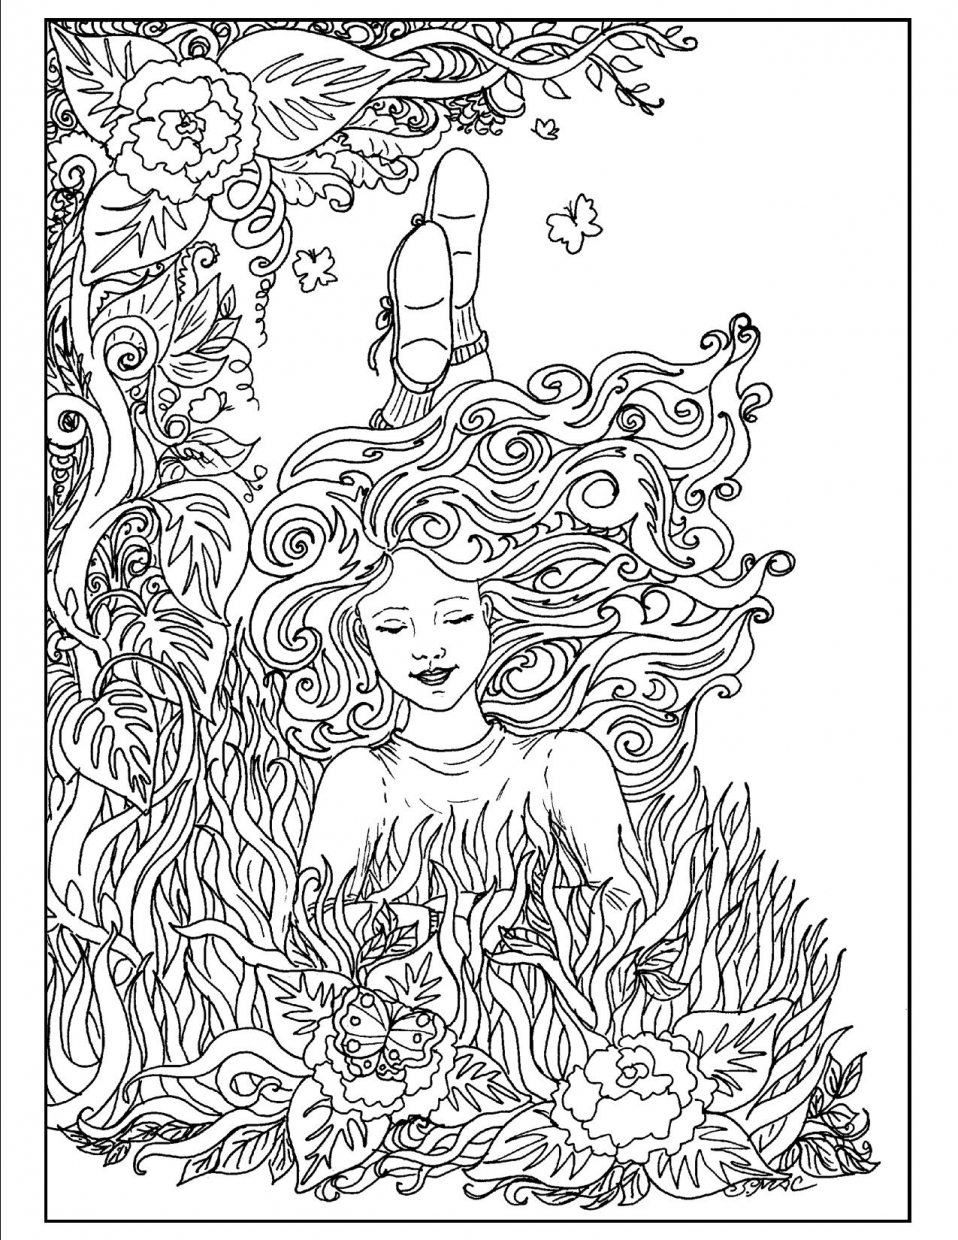 Get this free complex coloring pages printable ert2b for Free complex coloring pages